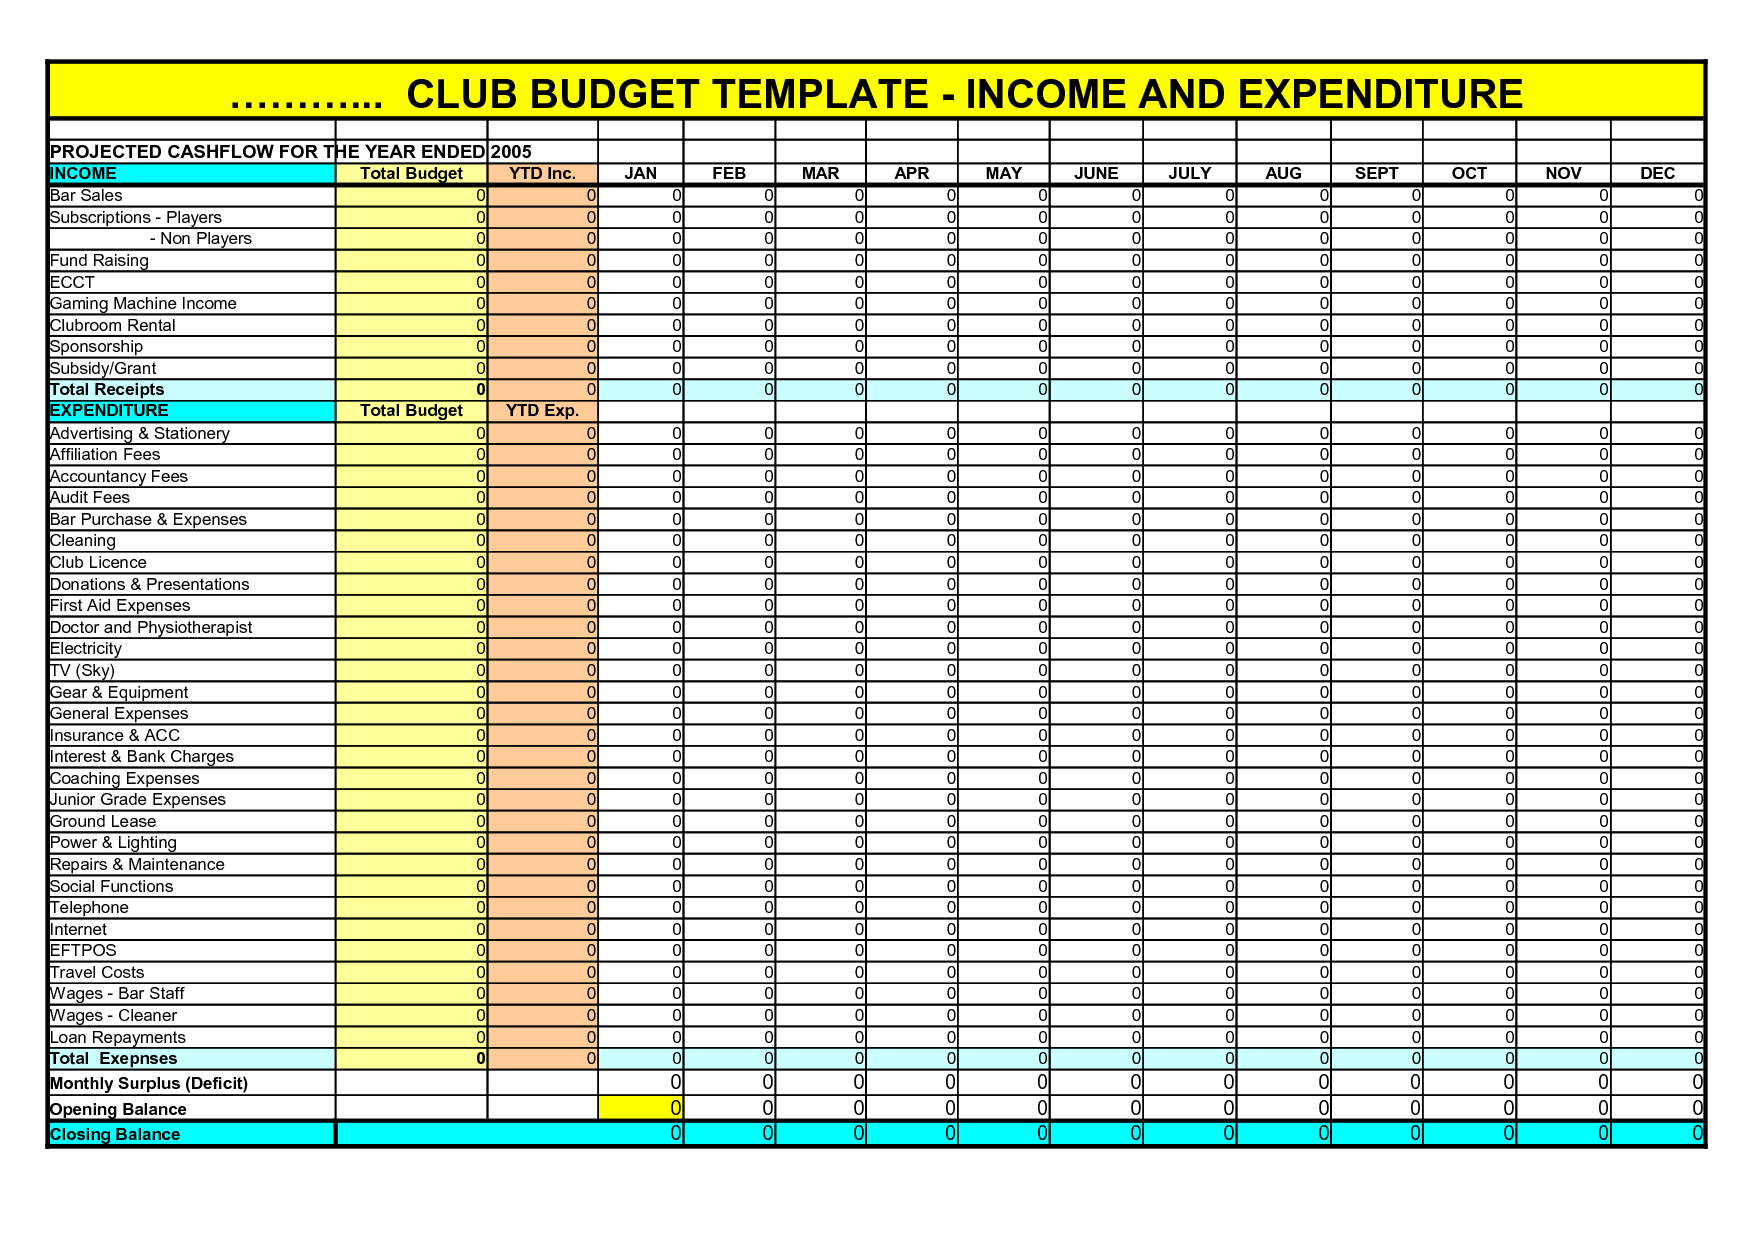 Income And Expenditure Spreadsheet Template - Resourcesaver Within Template For Business Expenses And Income